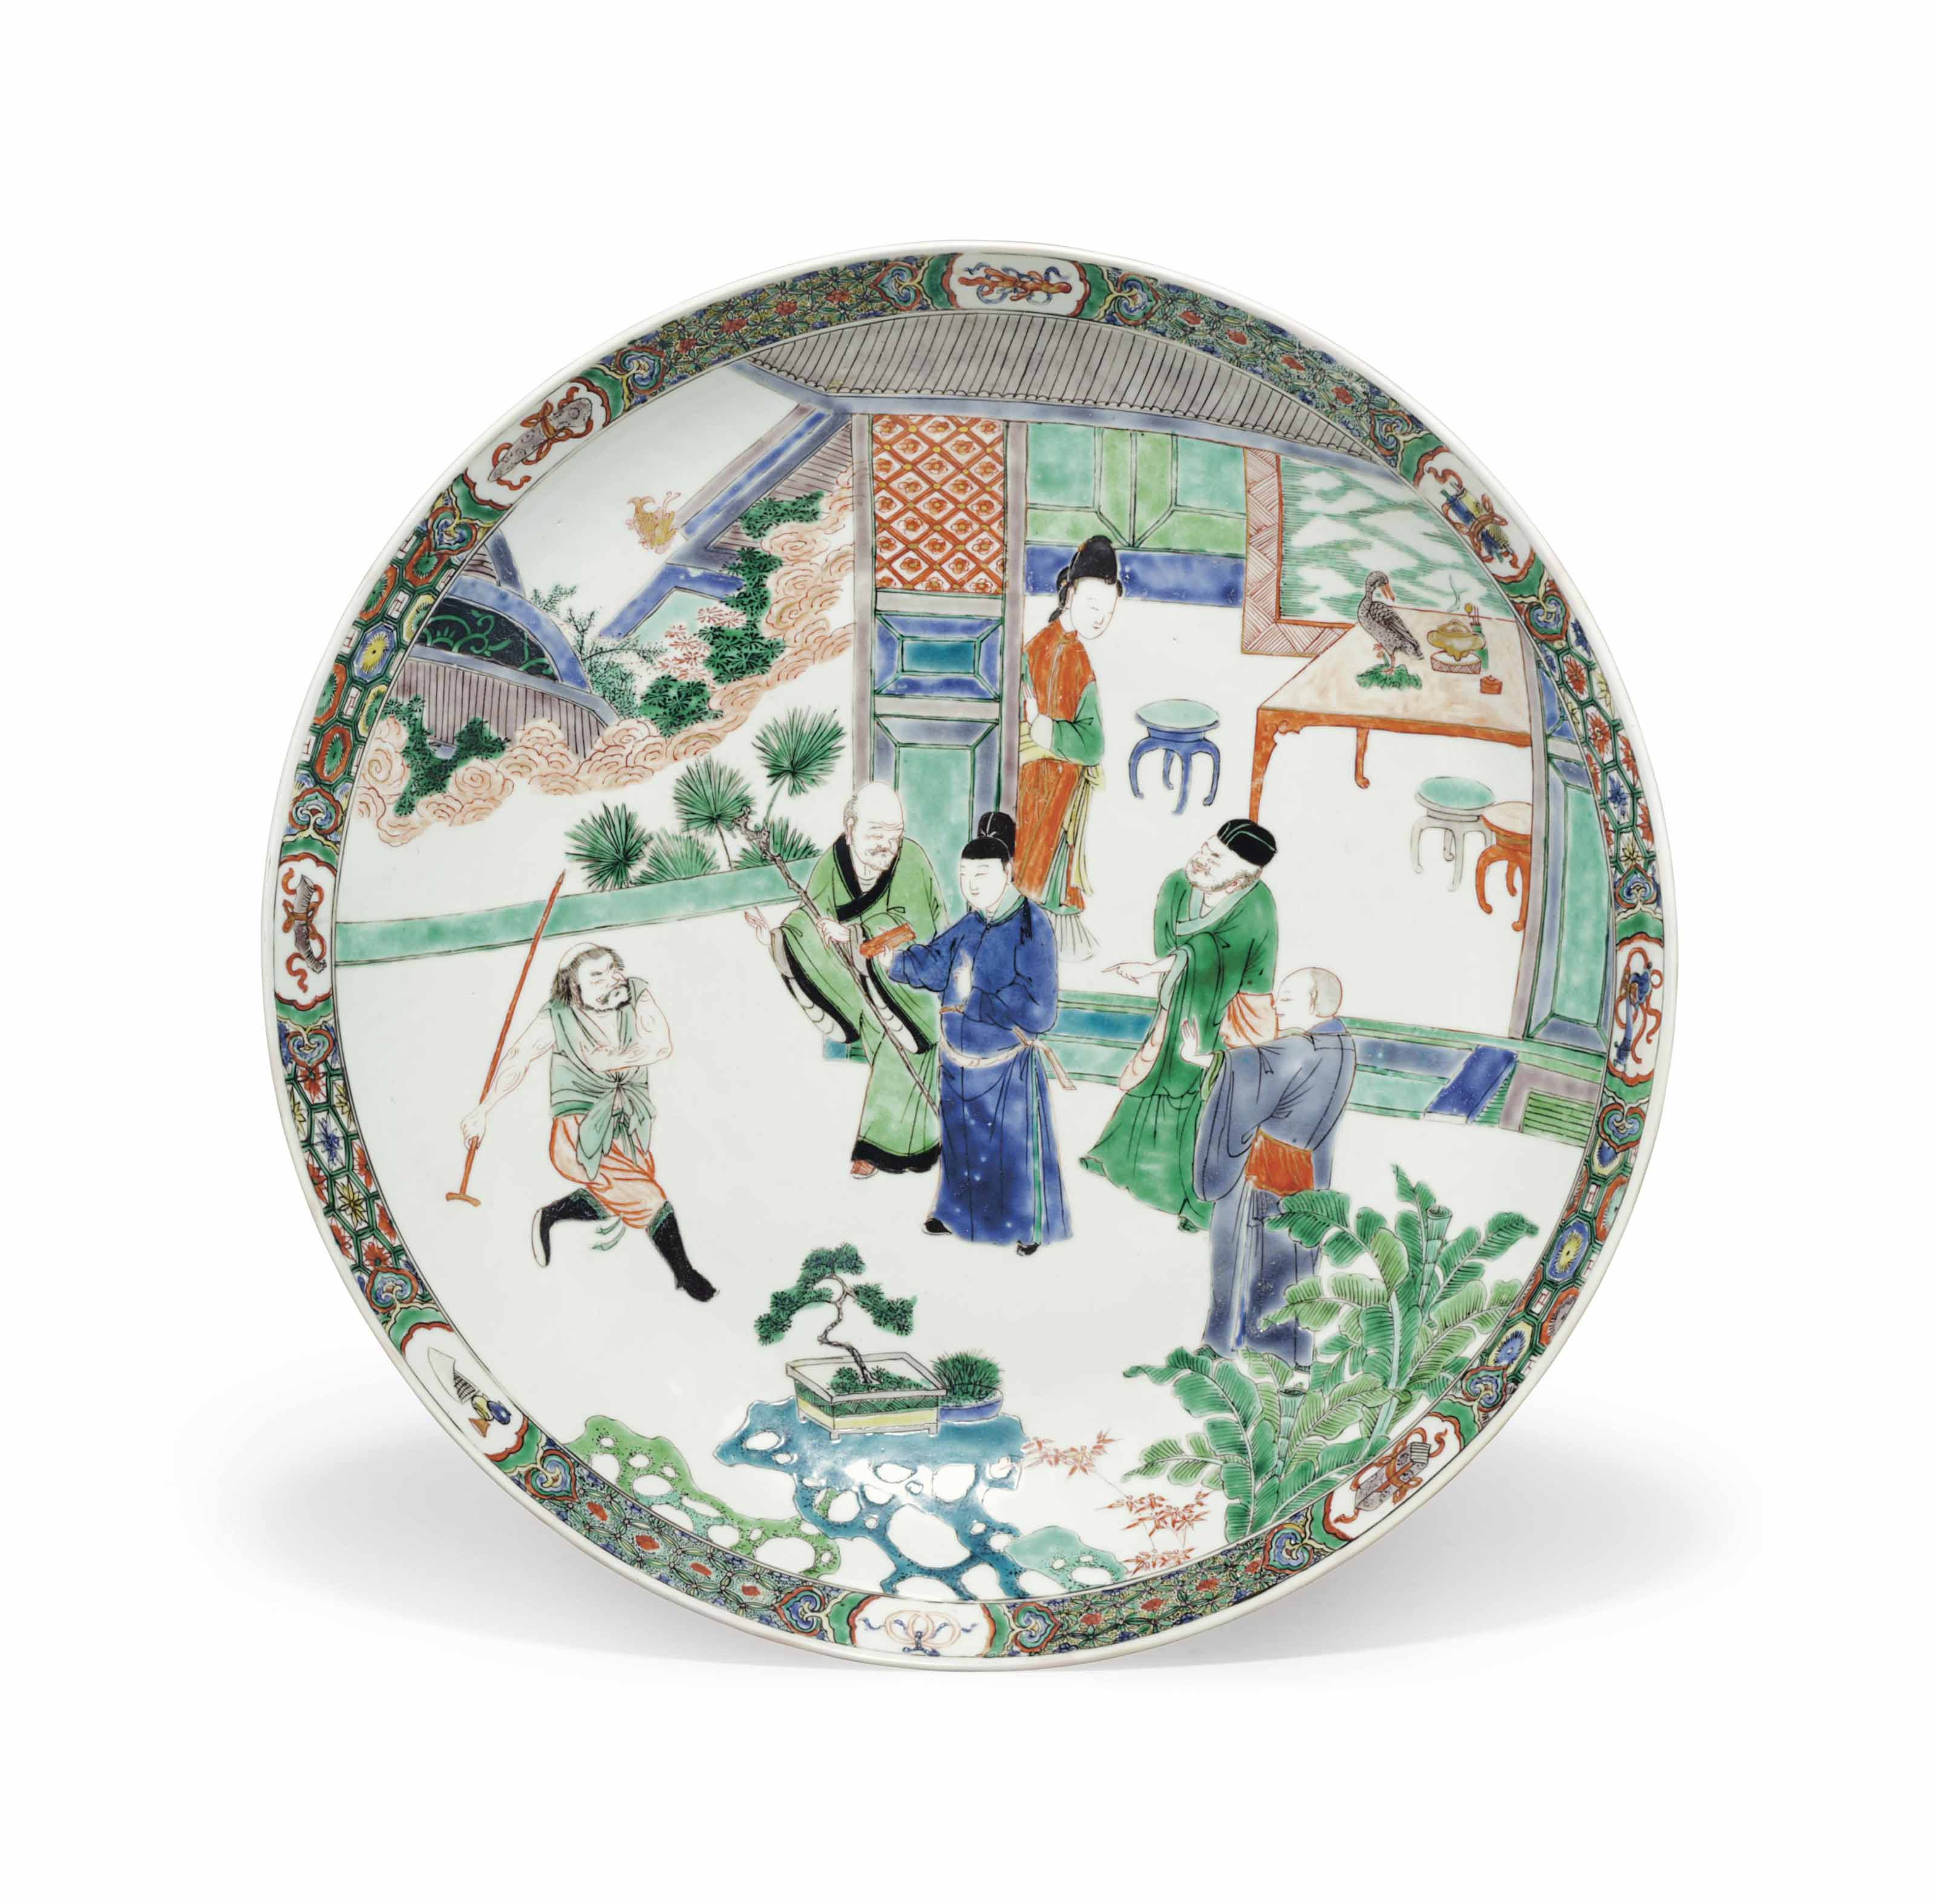 A LARGE CHINESE EXPORT PORCELAIN FAMILLE VERTE DISH